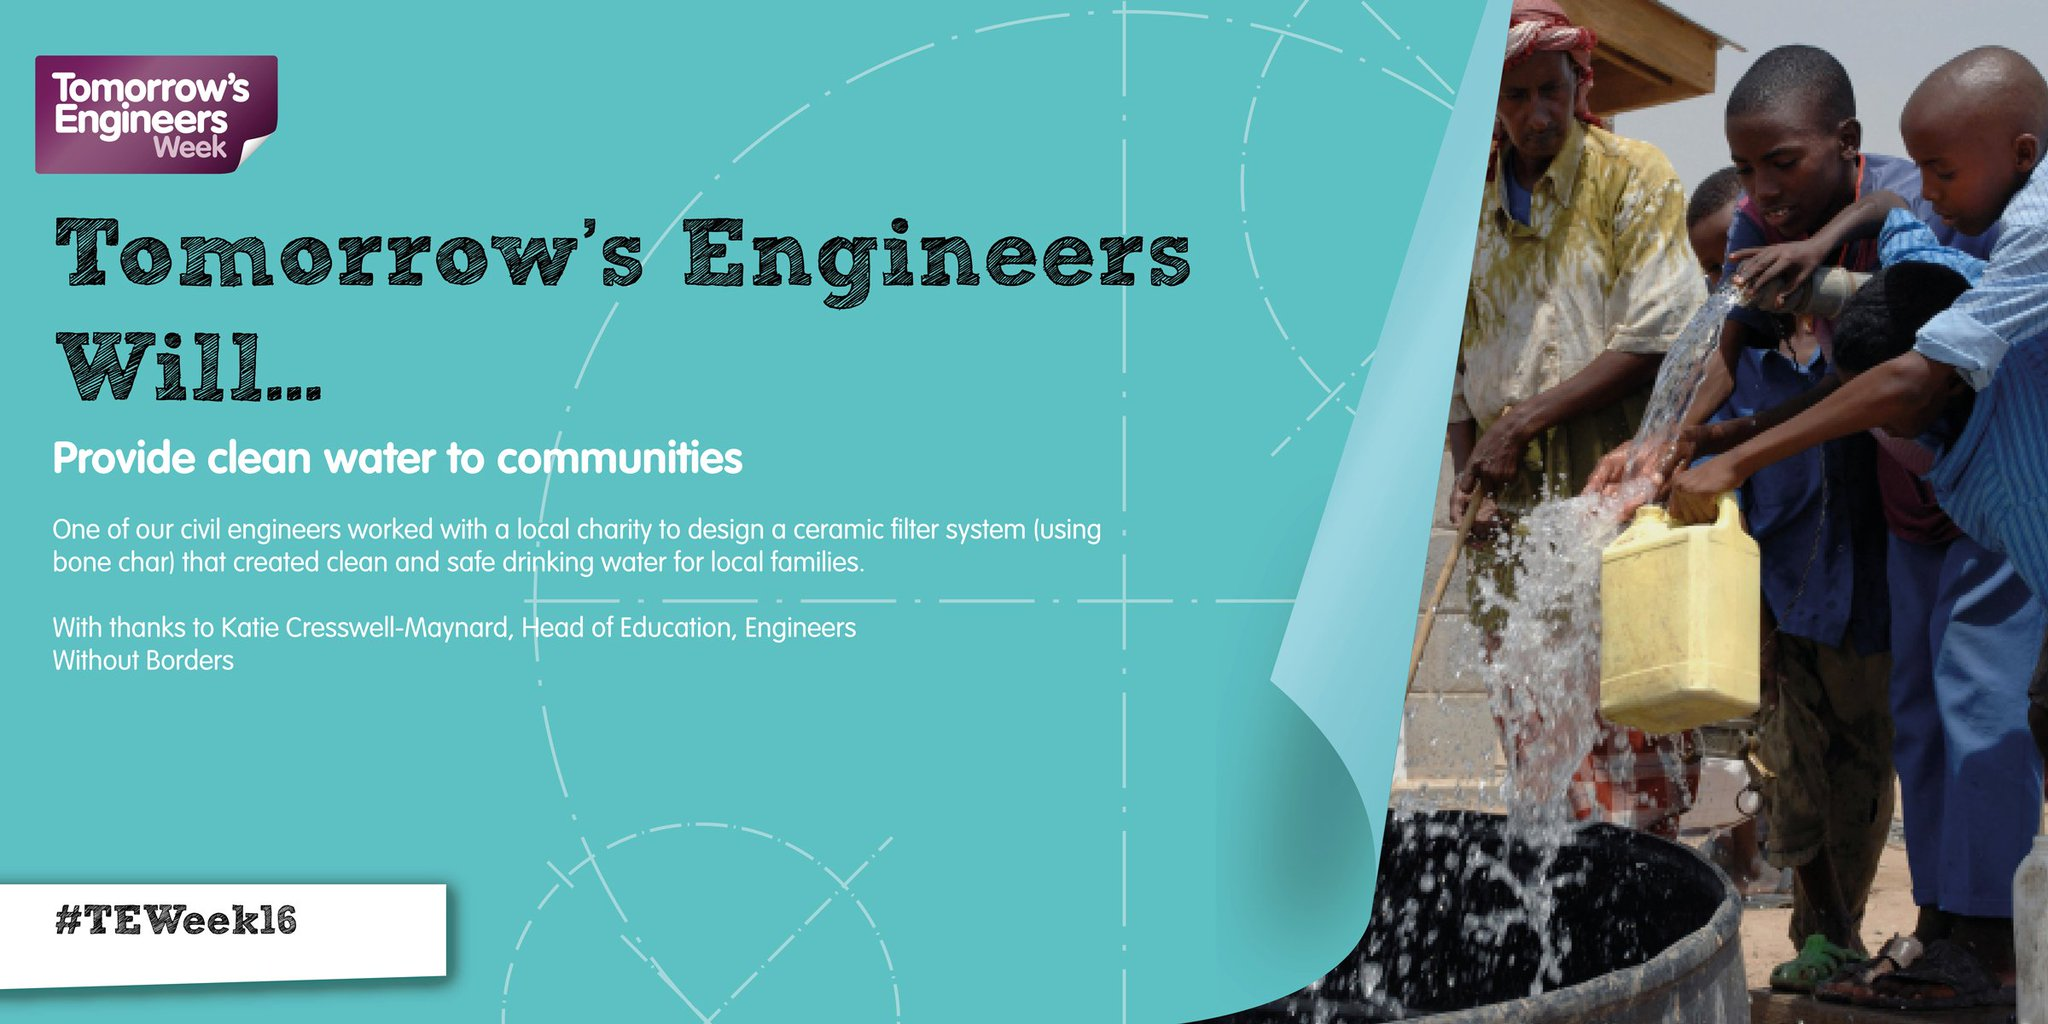 How can engineering give clean water to people across the world? Thanks for the answer @ewbuk #TEWeek16 https://t.co/i7QVPQnM51